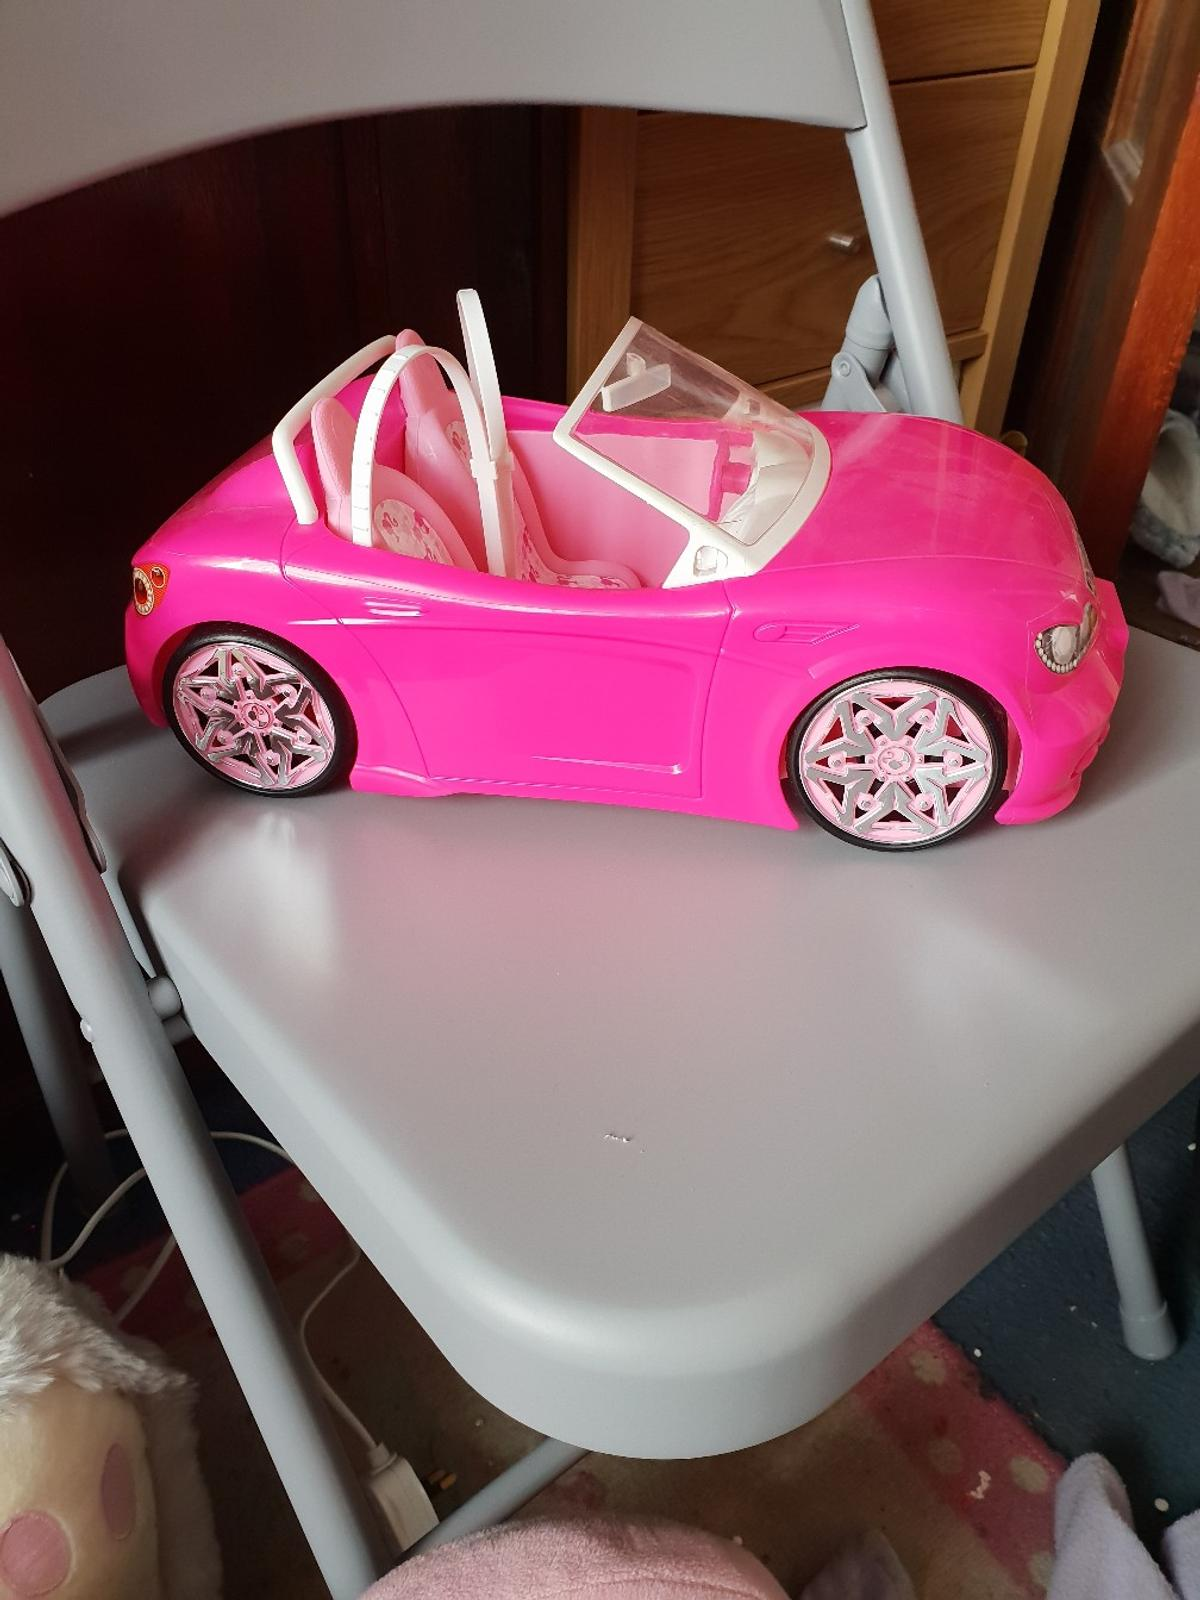 Barbie Pink Convertible In Ig11 Dagenham For 7 00 For Sale Shpock